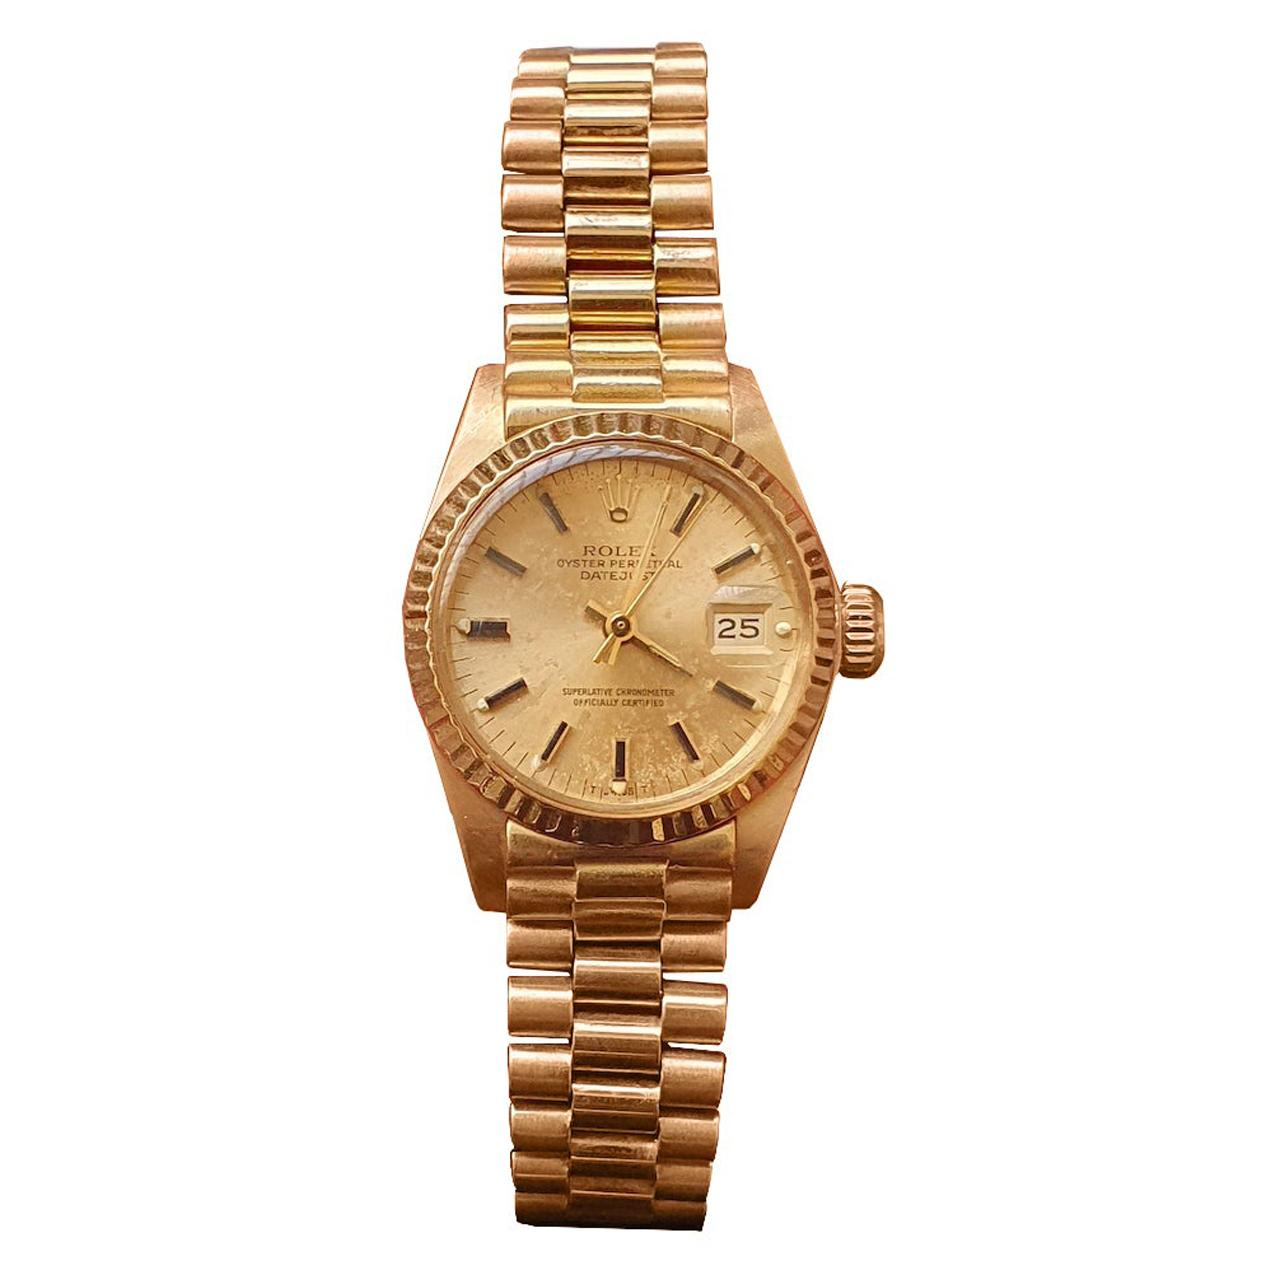 Rolex Lady Oyster Perpetual Datejust